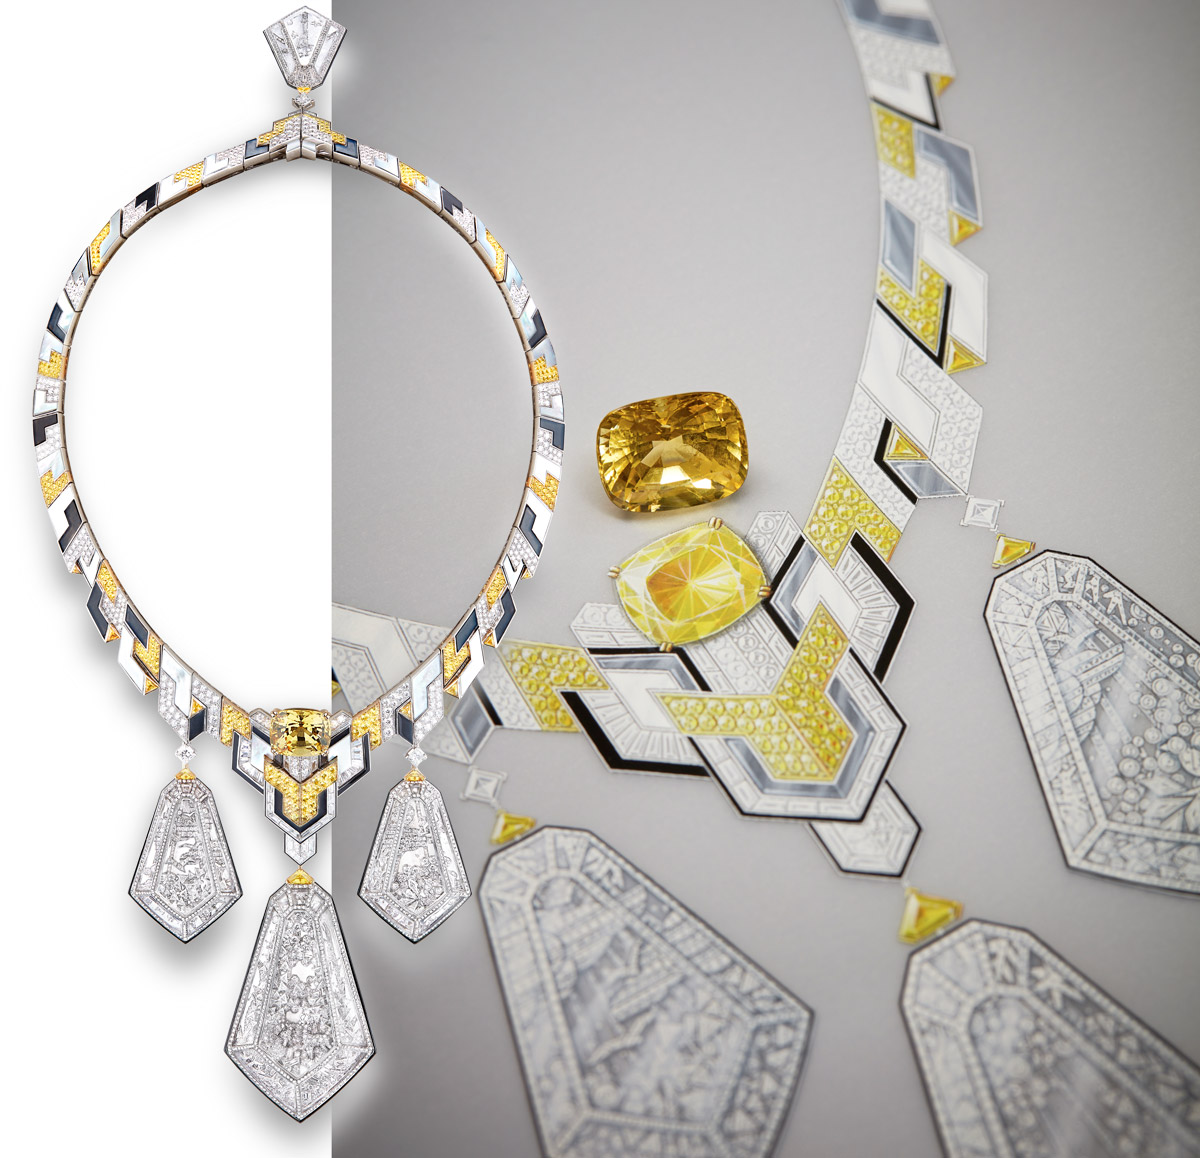 Boucheron Hotel Particulier necklace with a yellow sapphire, rock crystal, mother of pearl, onyx and diamonds